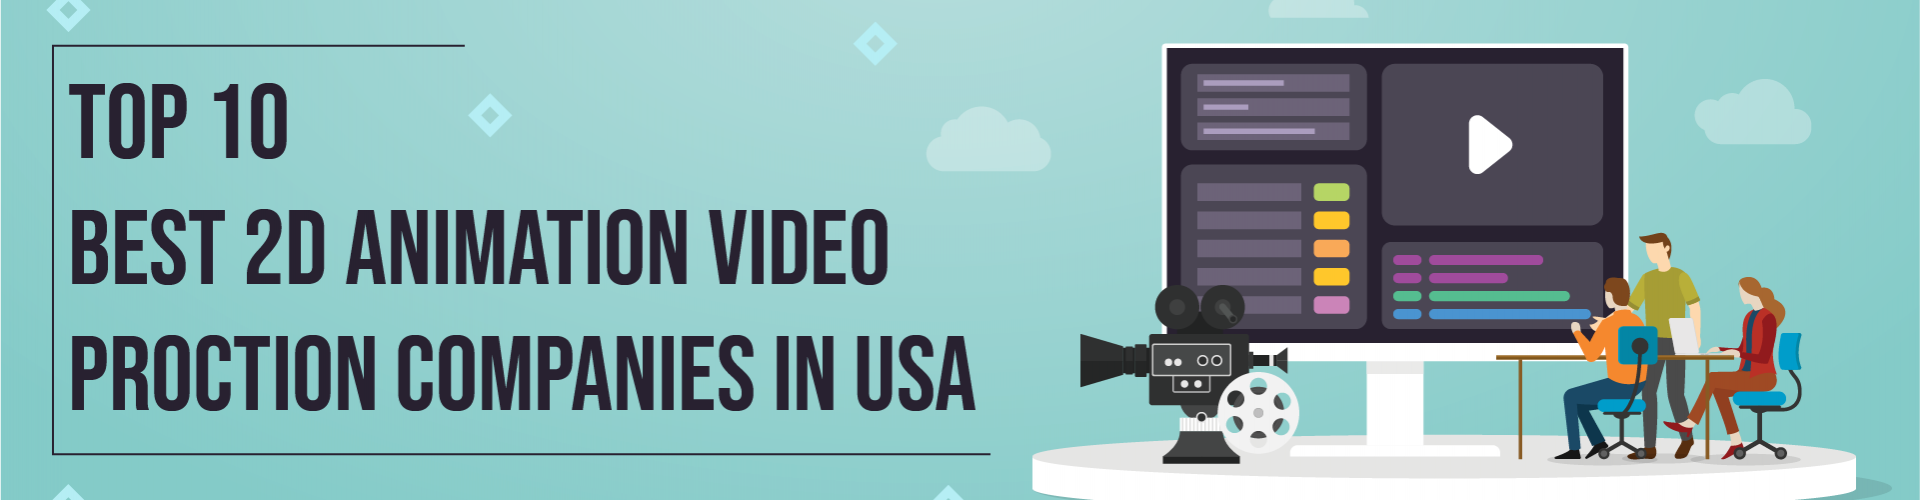 10 Best 2D Animation Video Production Companies in USA – 2021